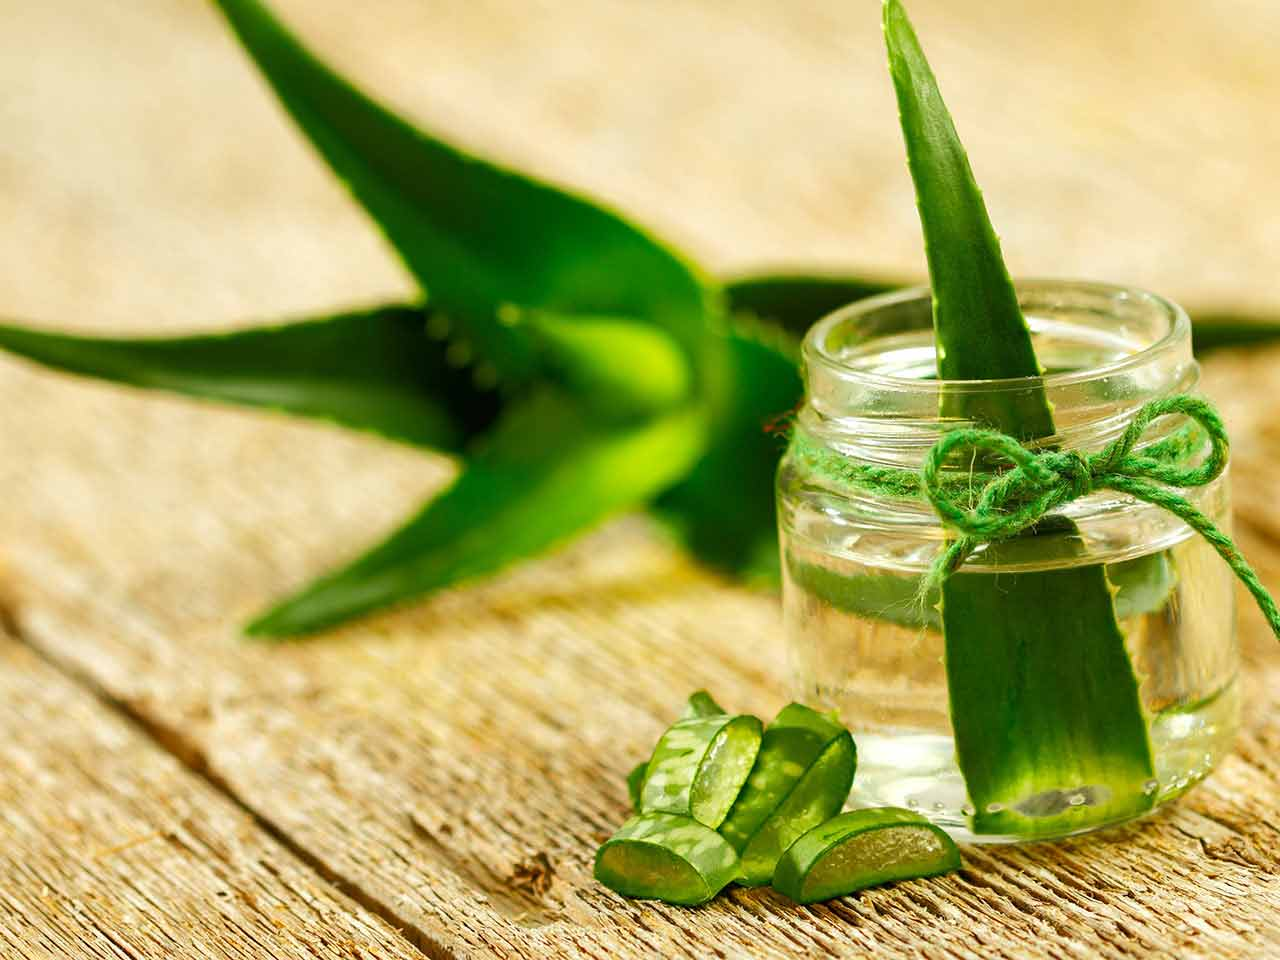 Aloe vera leaves, a common home remedy for wrinkles